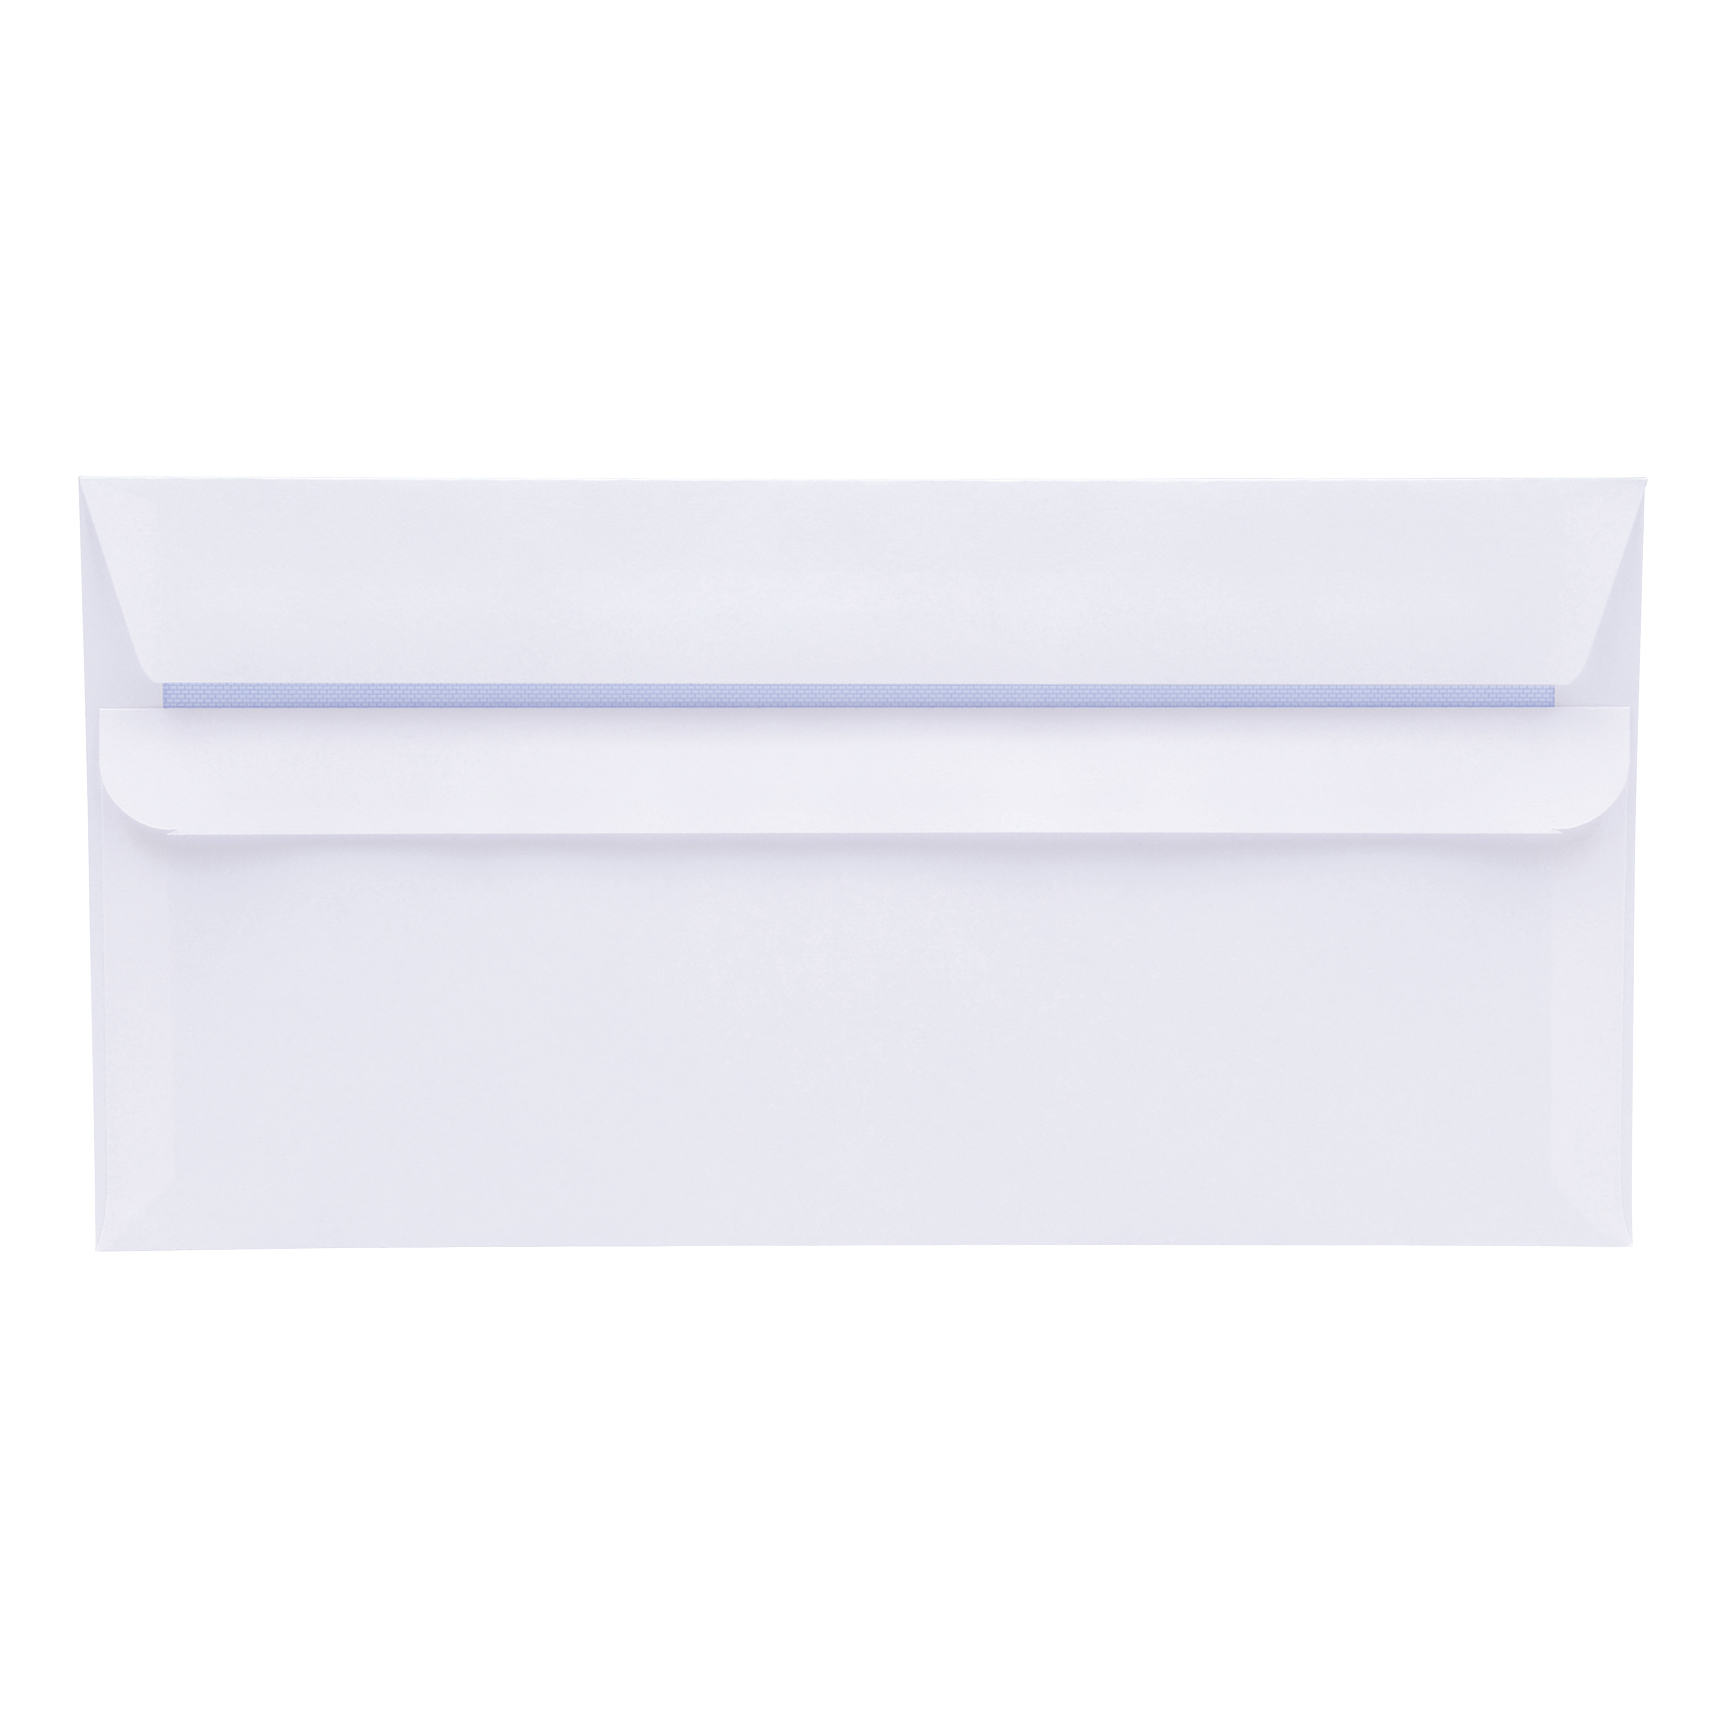 DL 5 Star Office Envelopes PEFC Wallet Self Seal 80gsm DL 220x110mm White Pack 1000